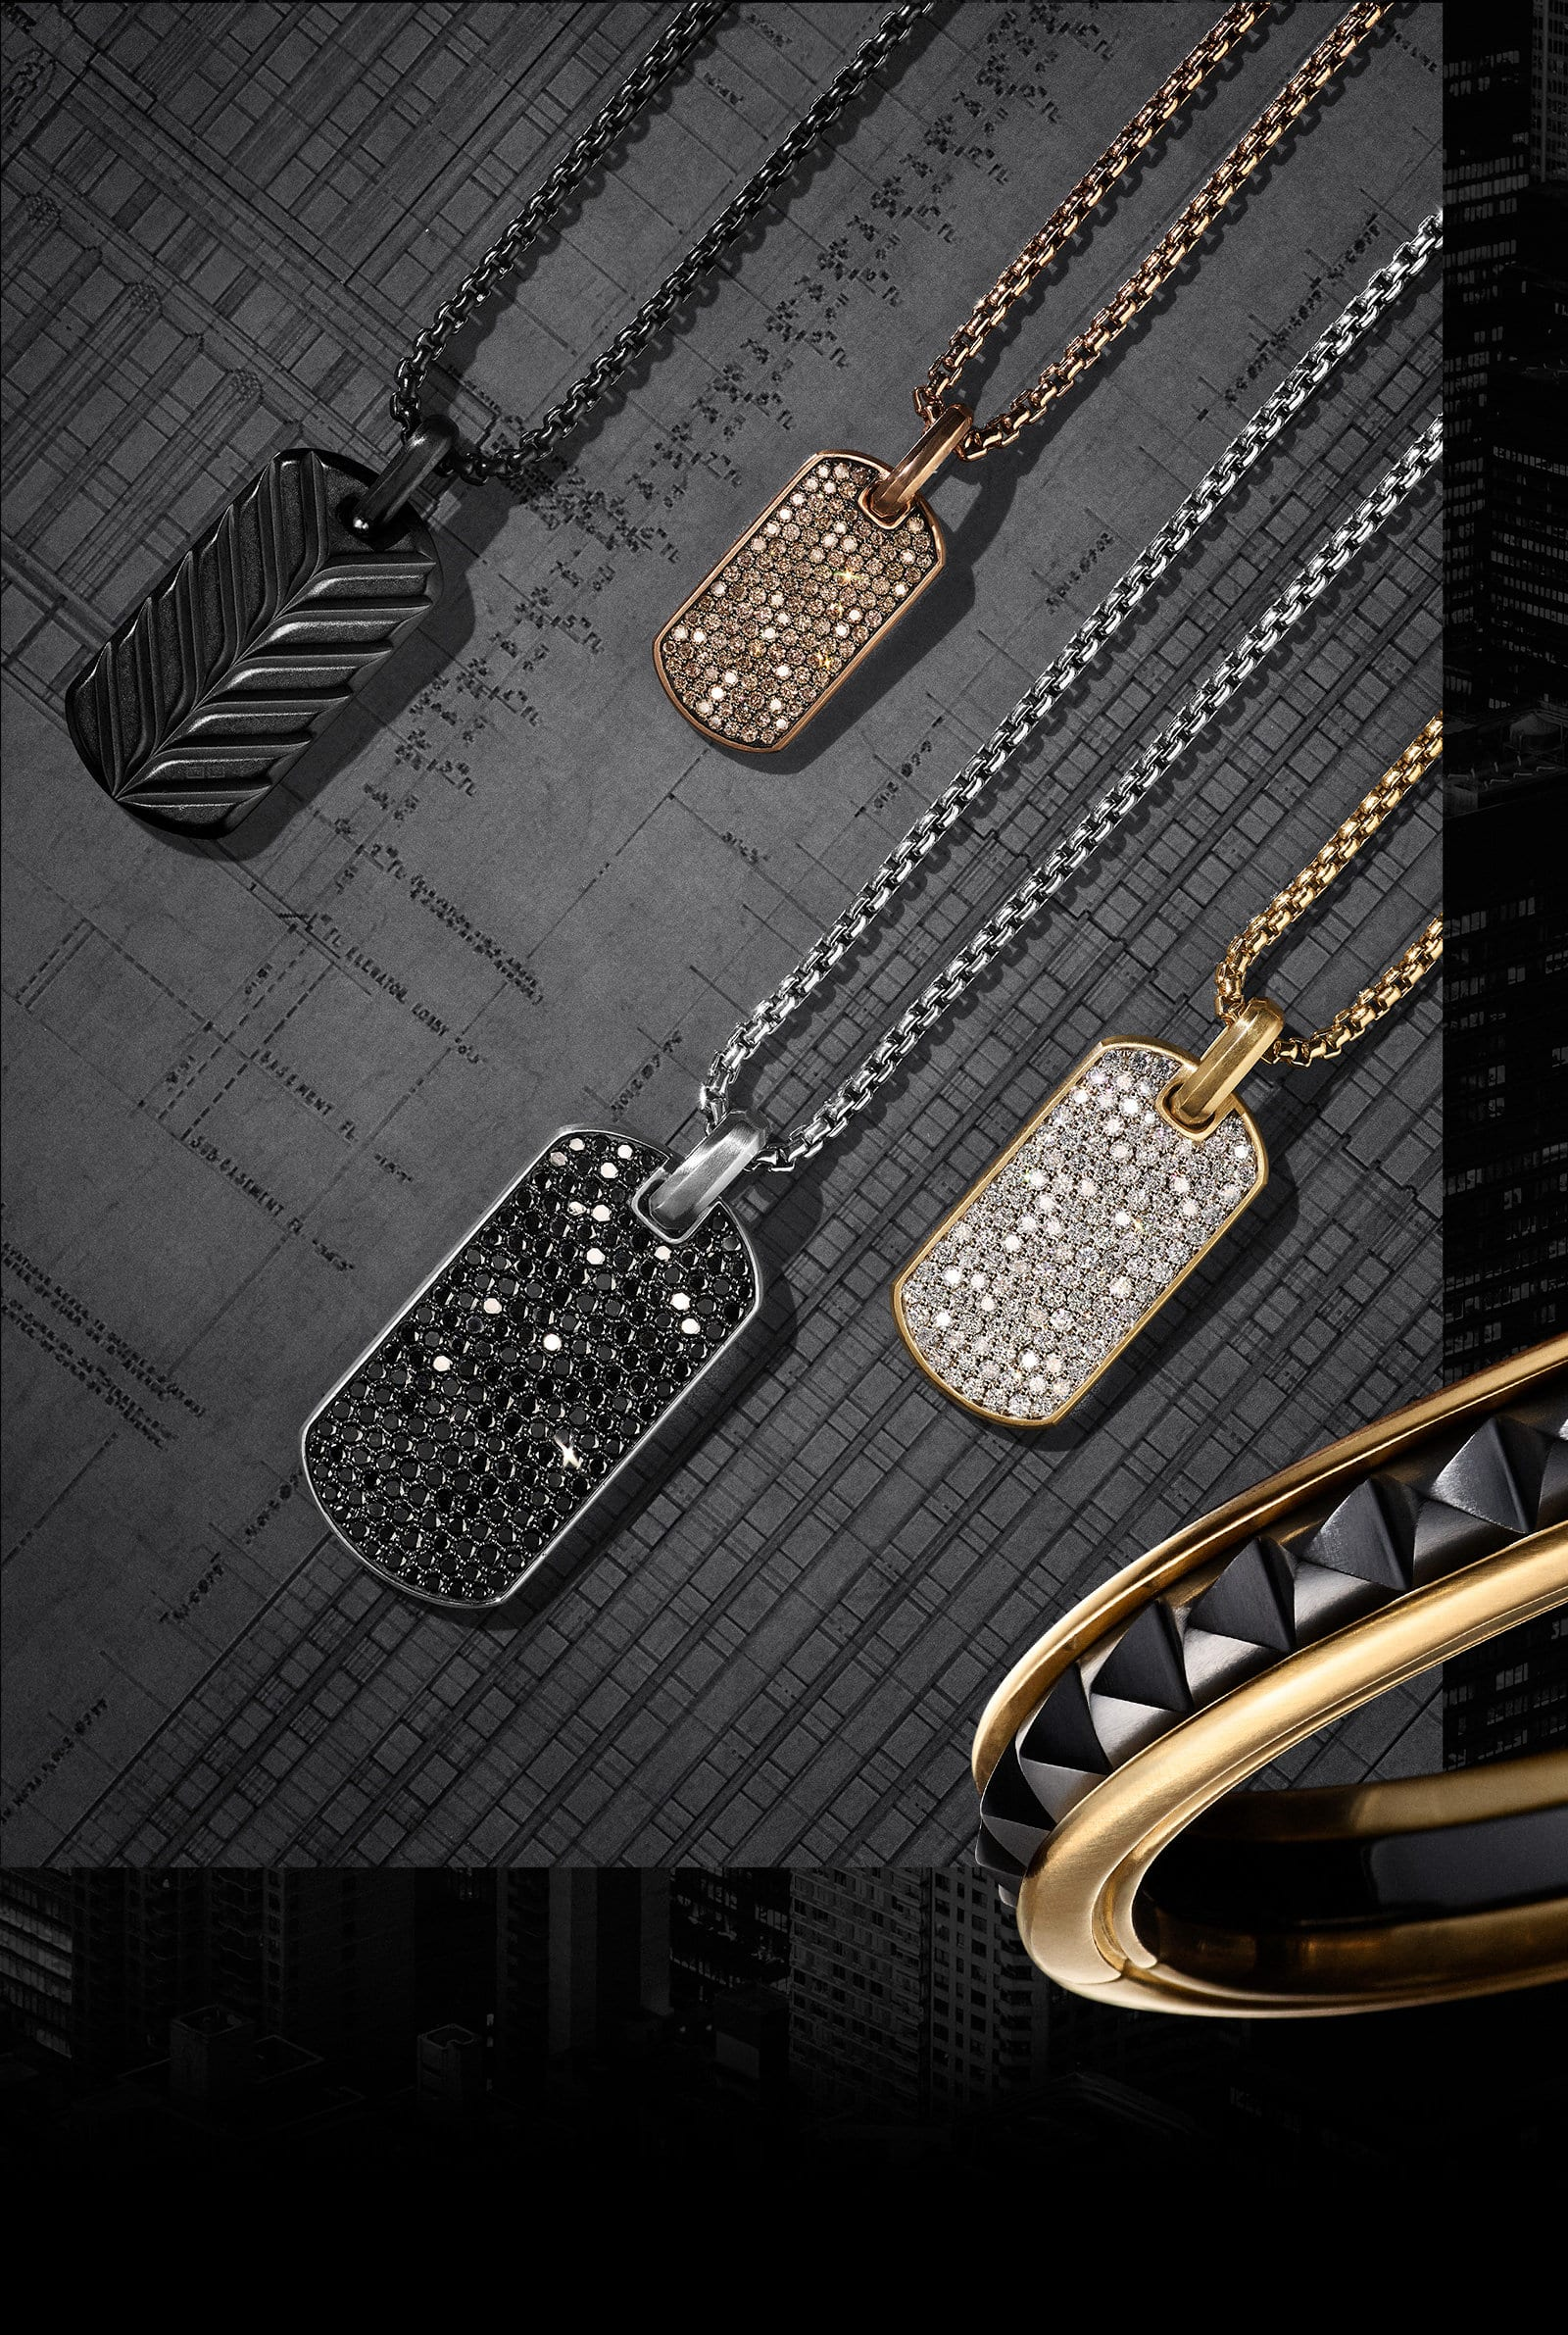 Four David Yurman men's tags and box chains. The jewelry is crafted of black titanium, blackened stainless steel, 18K rose or yellow gold, or sterling silver with or without cognac, black or white diamonds.